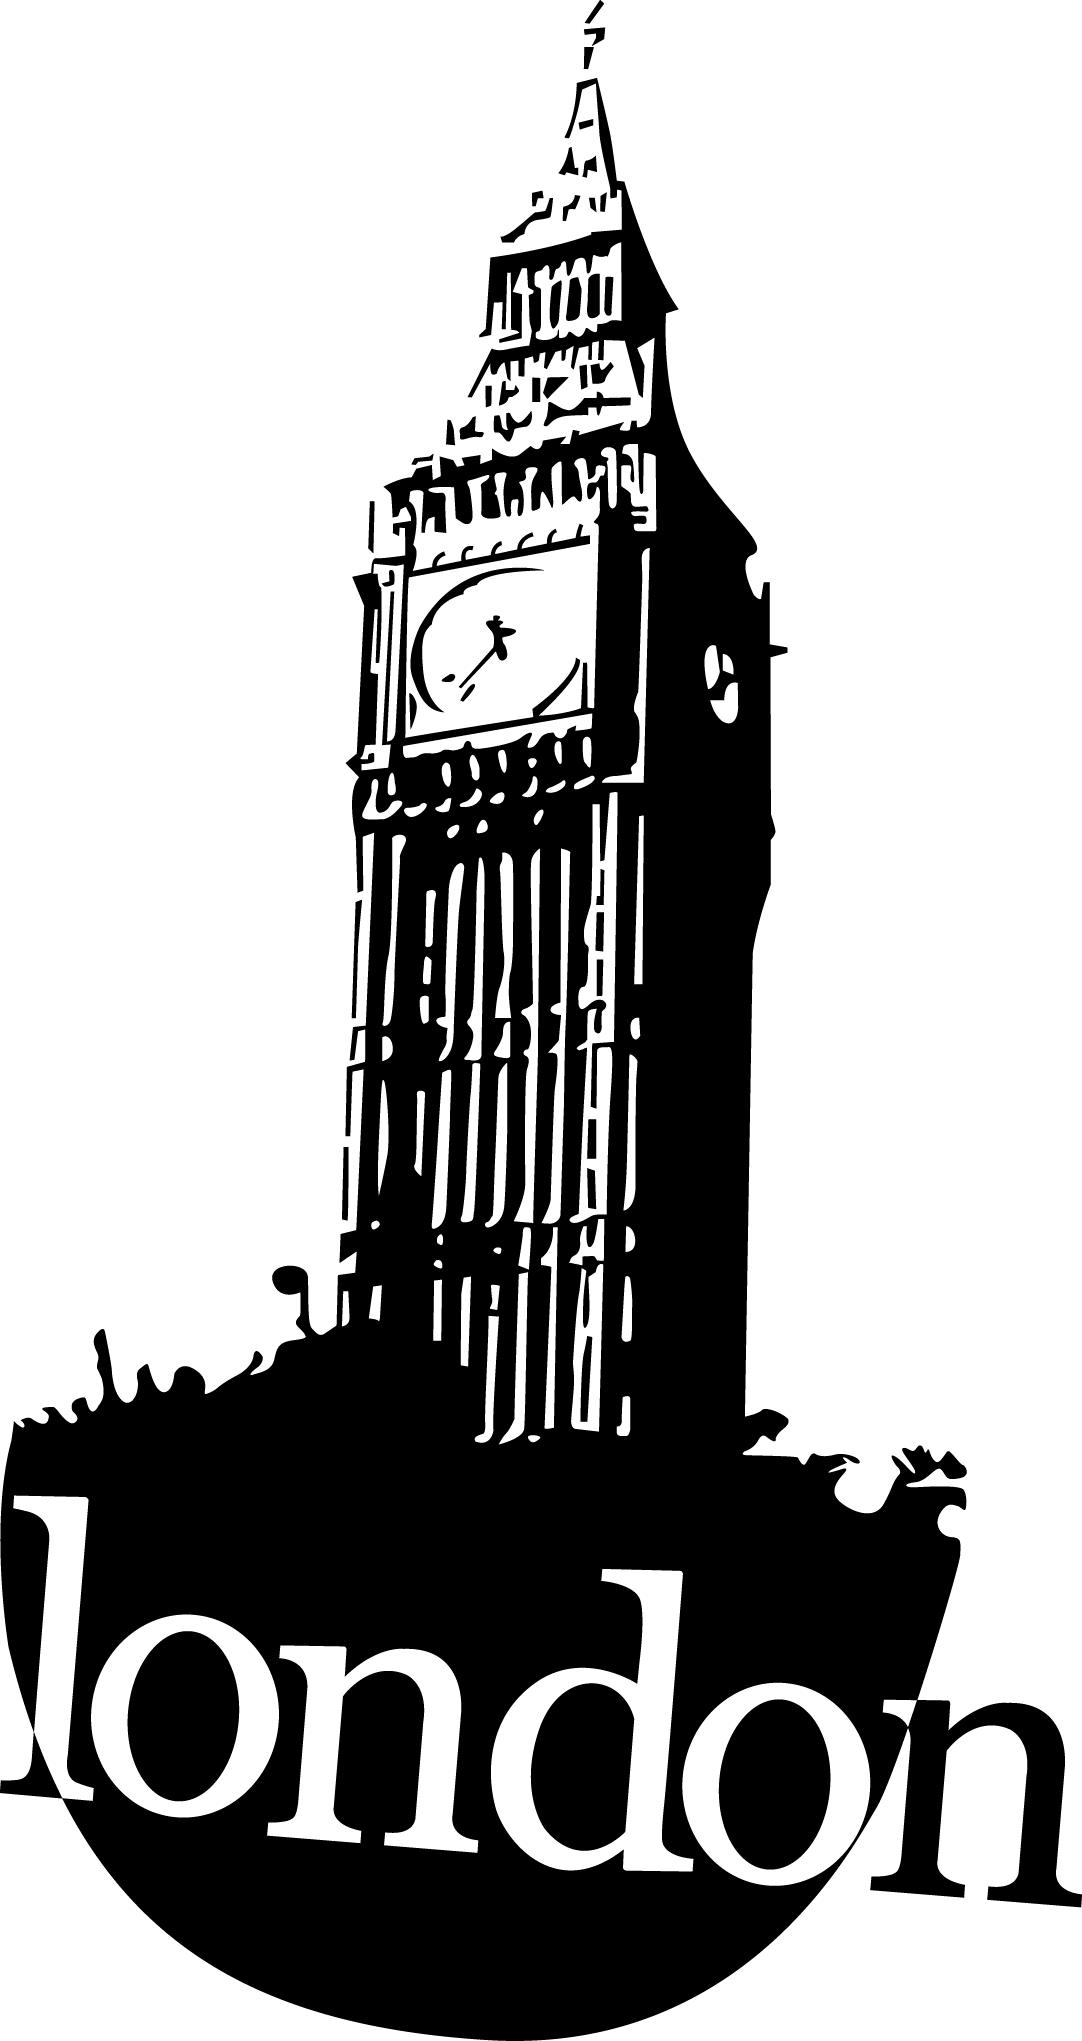 Big Ben clipart drawn London Inspiration Big Ben Art